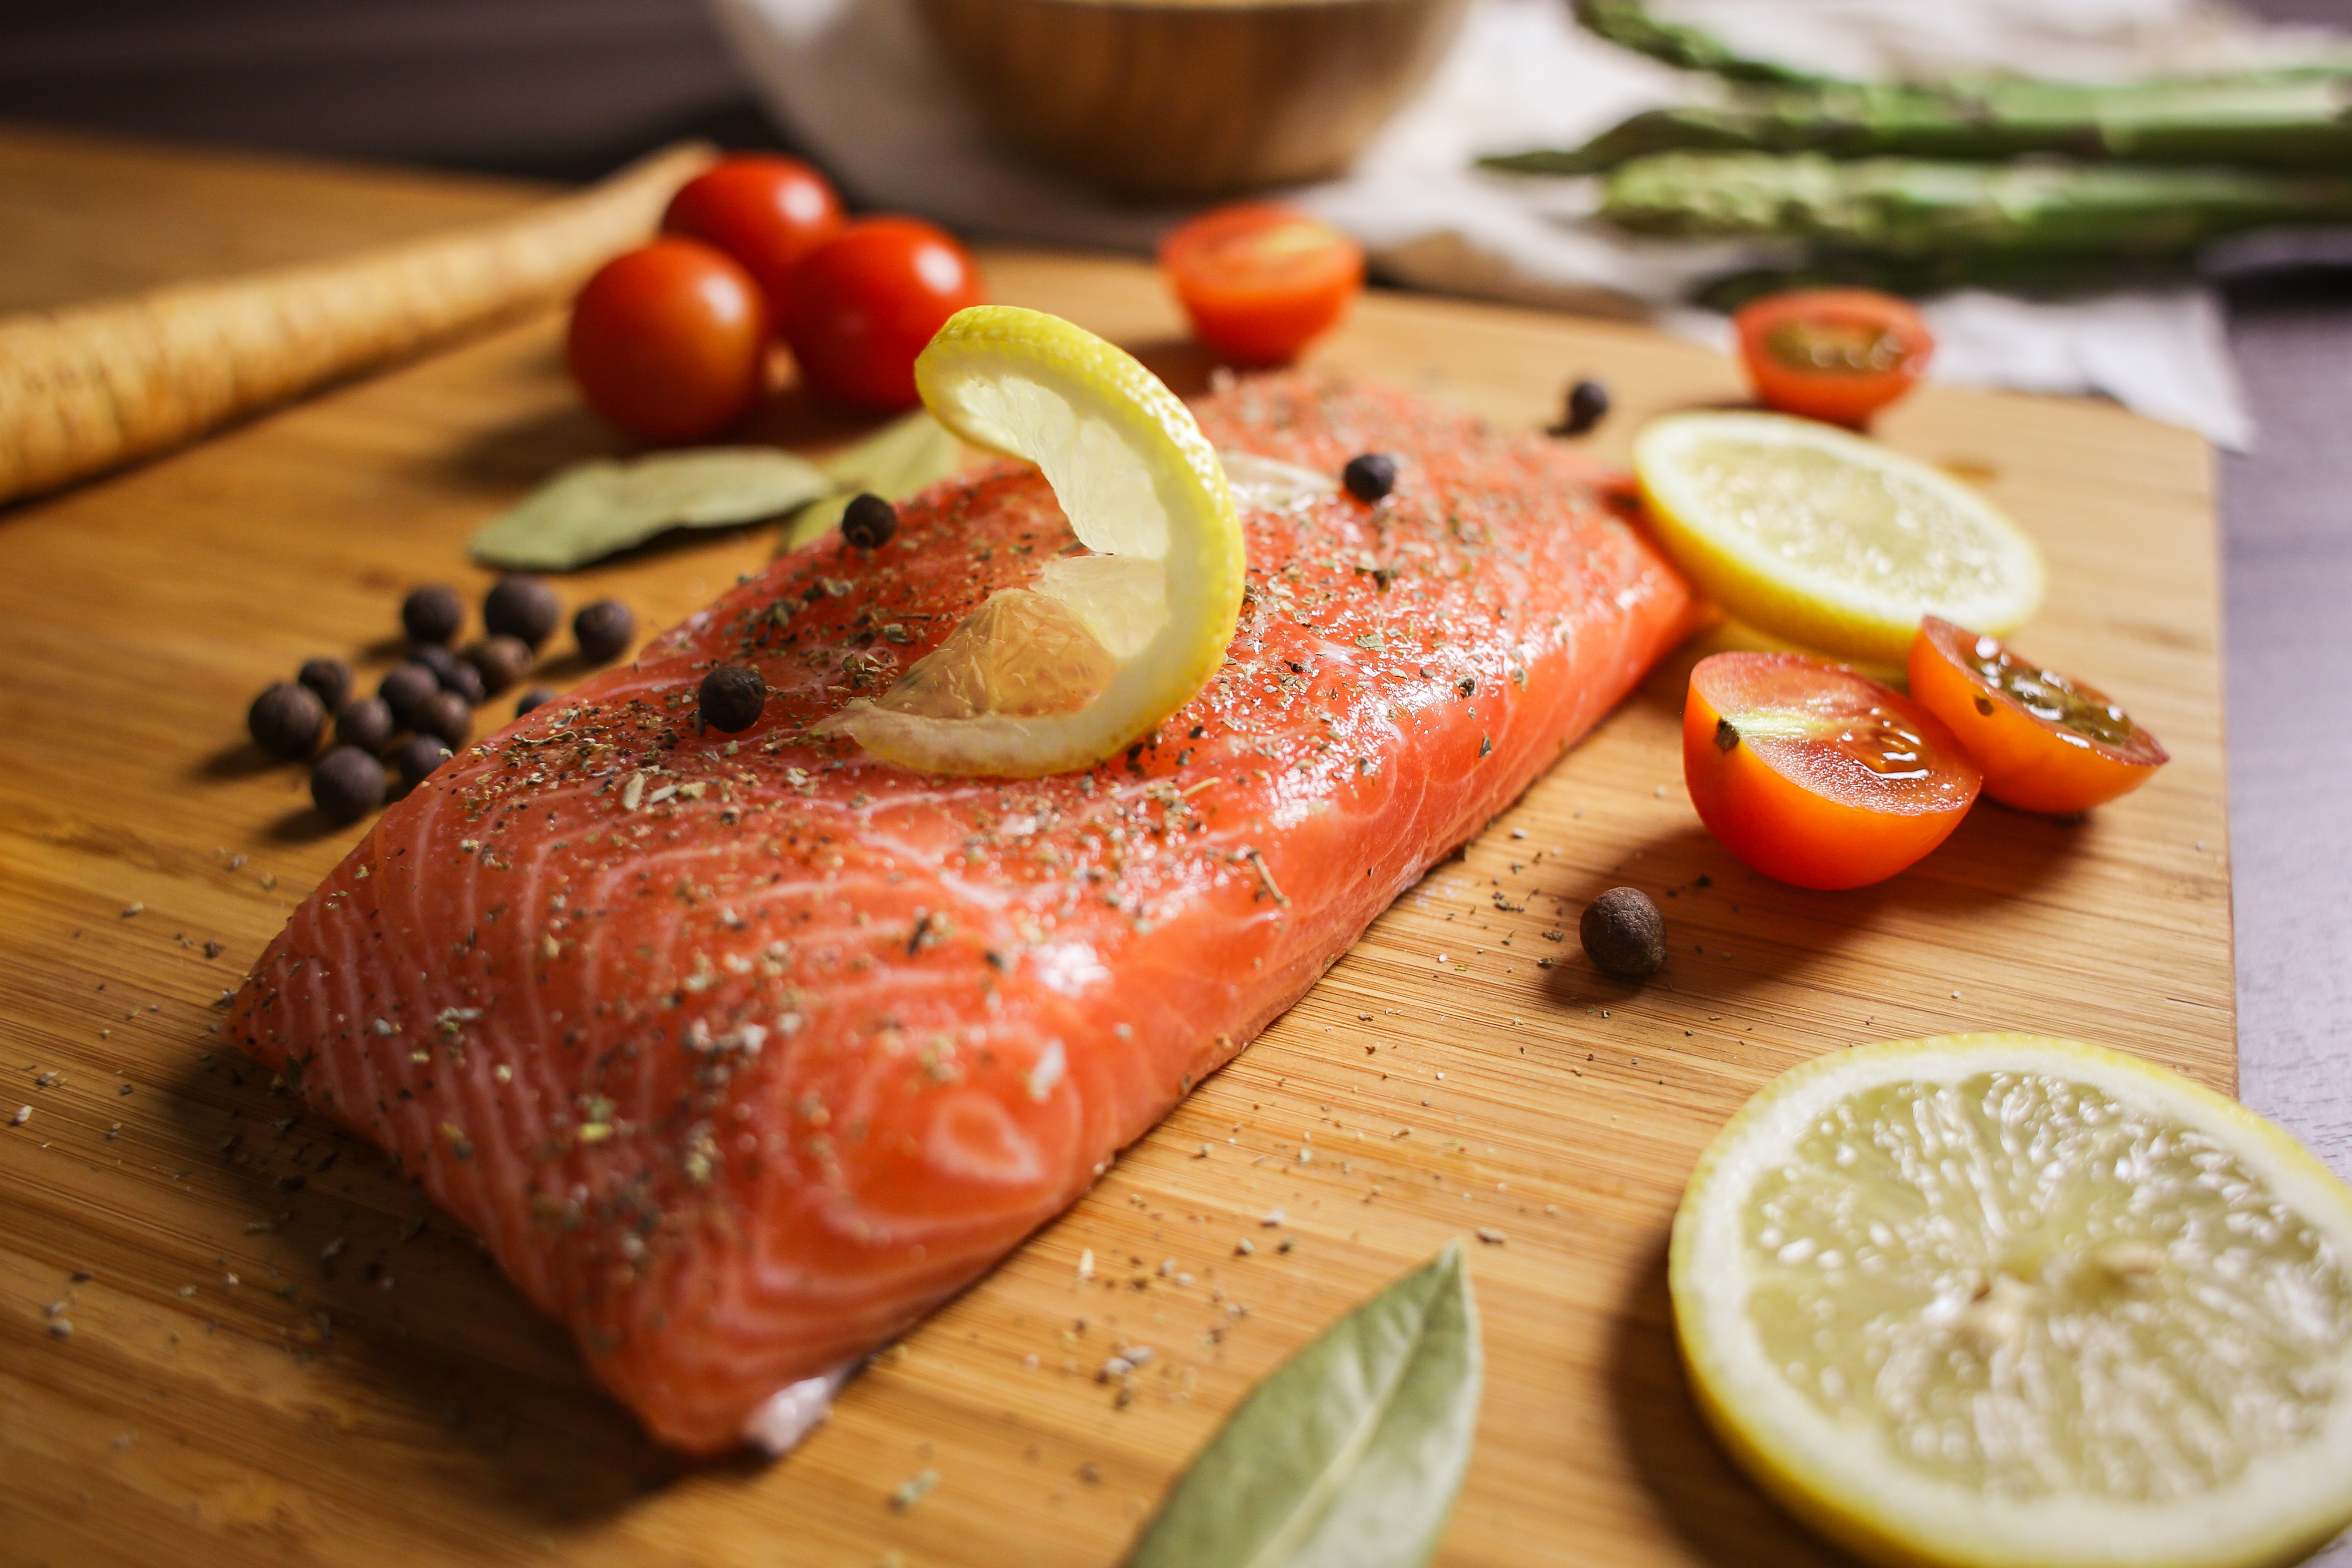 preparing-salmon-steak-close-up-picjumbo-com